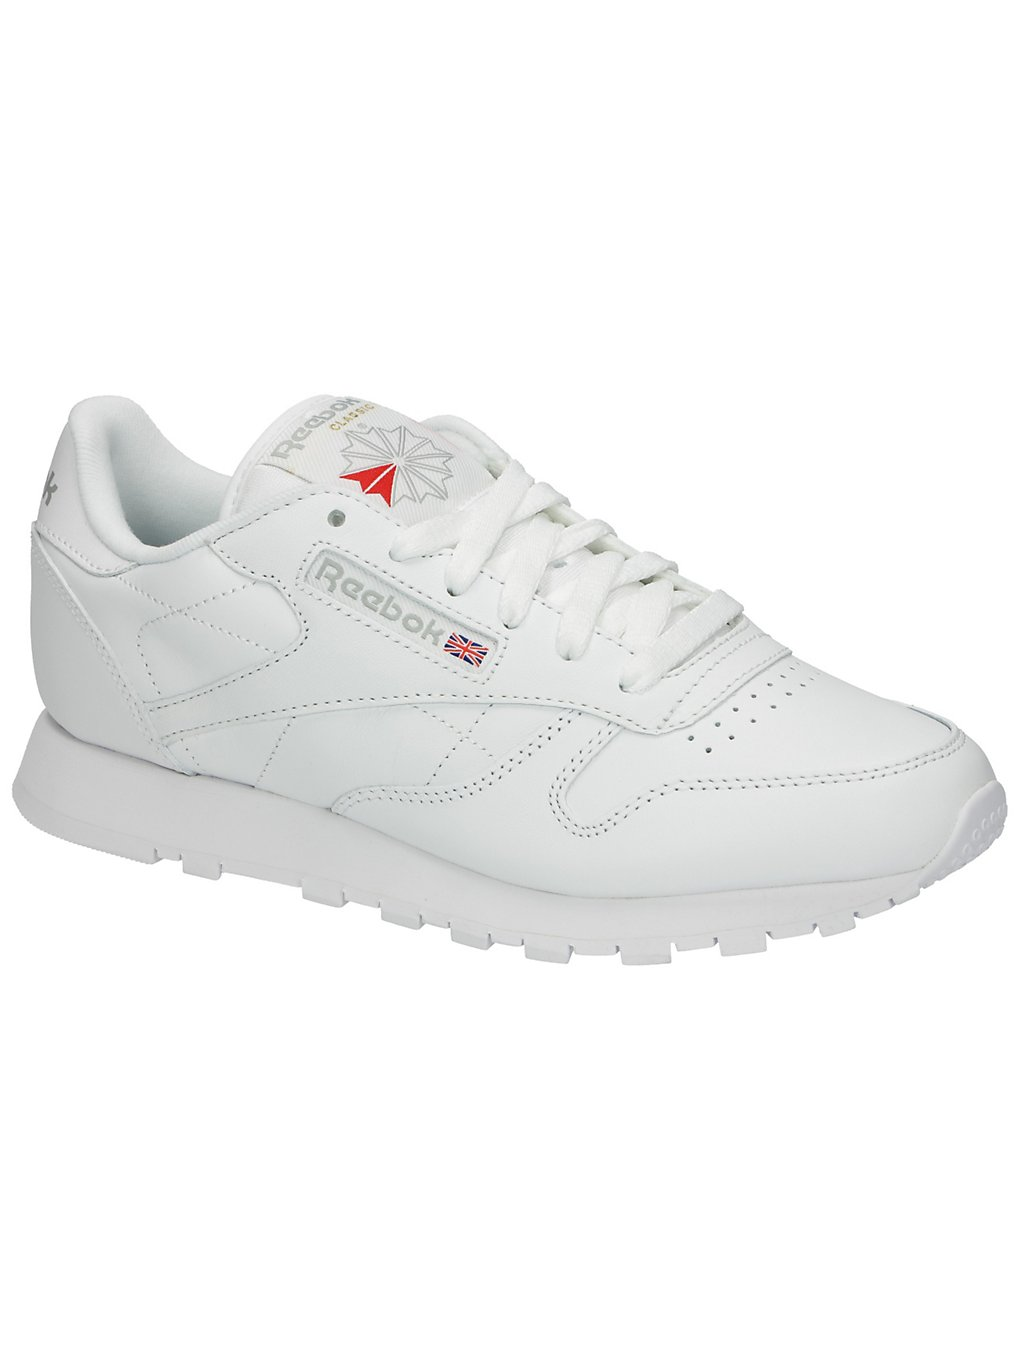 Reebok Classic Leather Sneakers int white